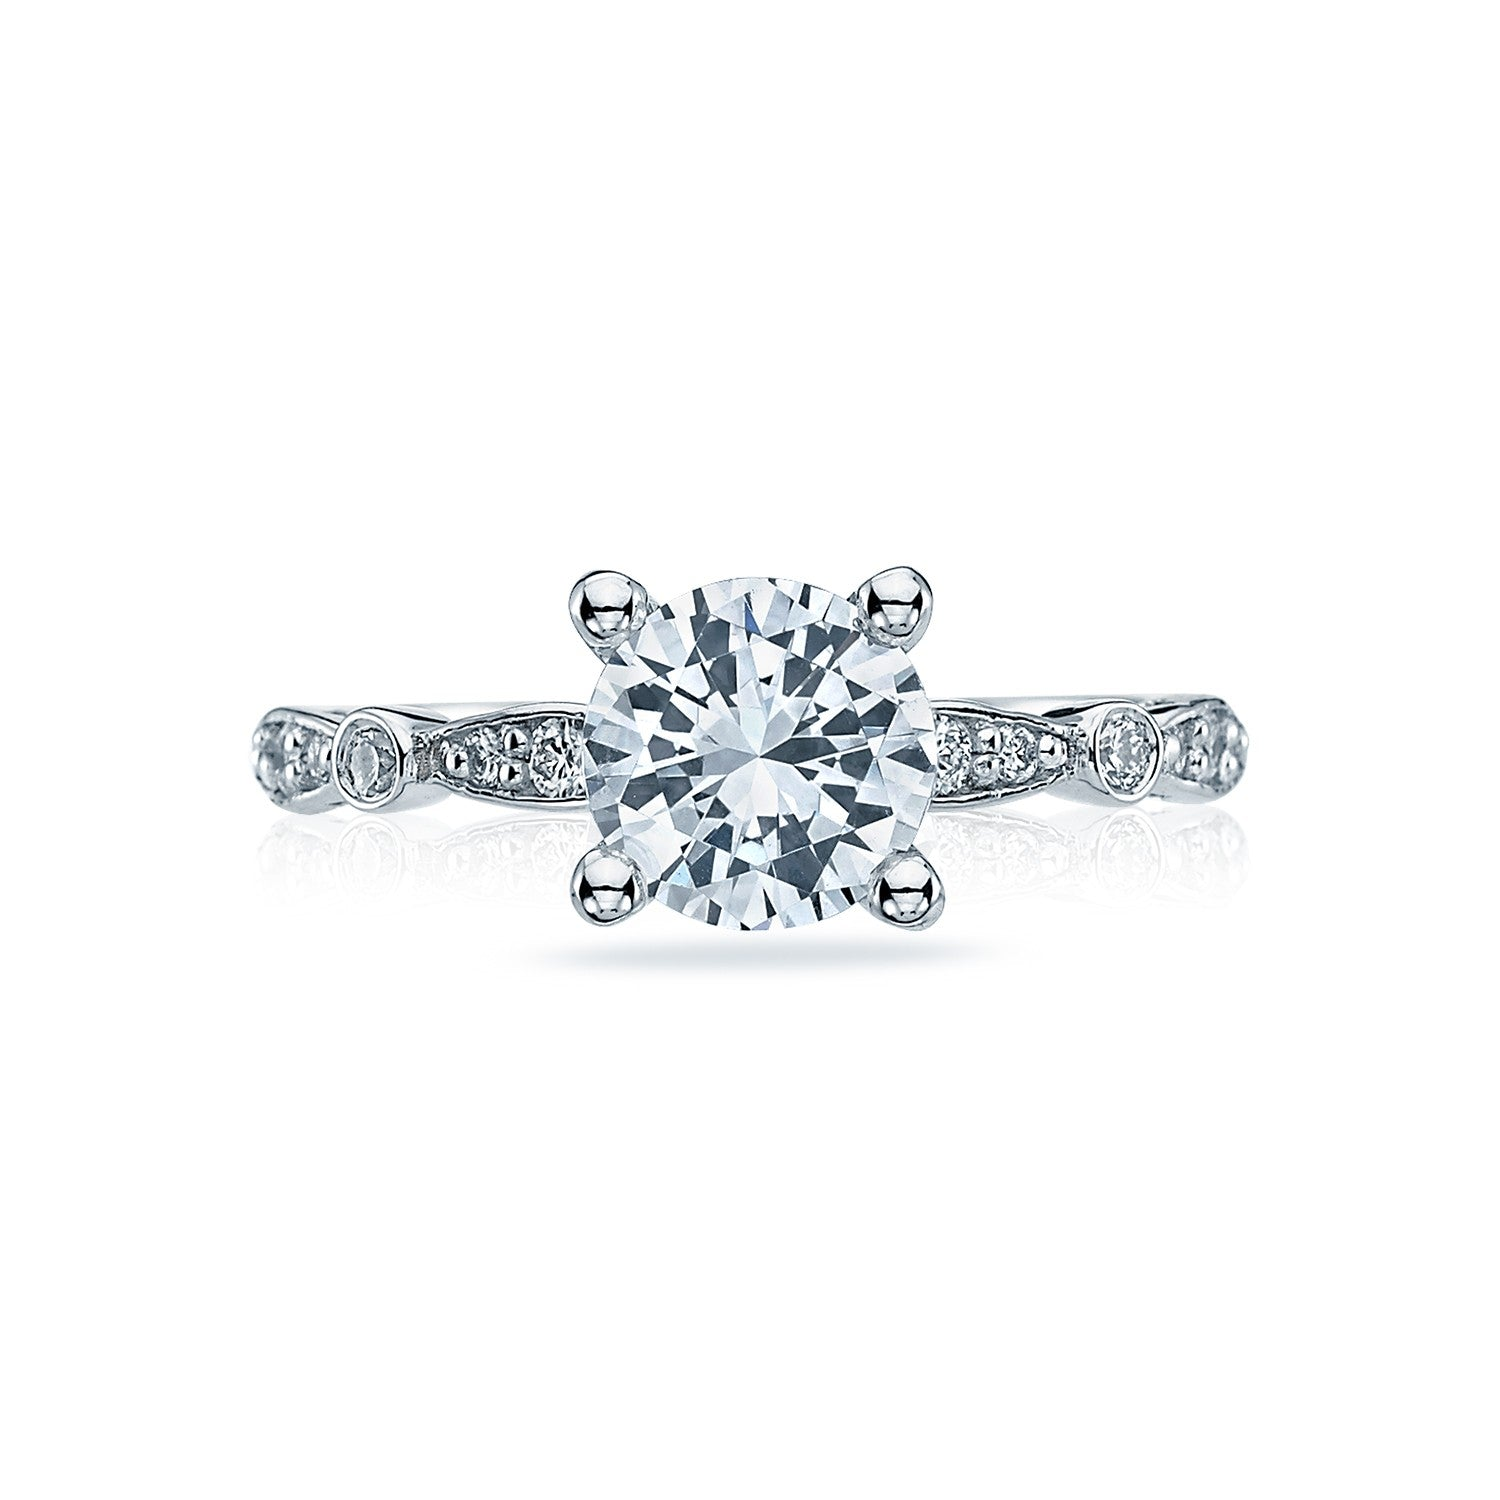 Tacori Sculpted Crescent 18K White Gold Solitaire Diamond Engagement Ring 47-2RD6